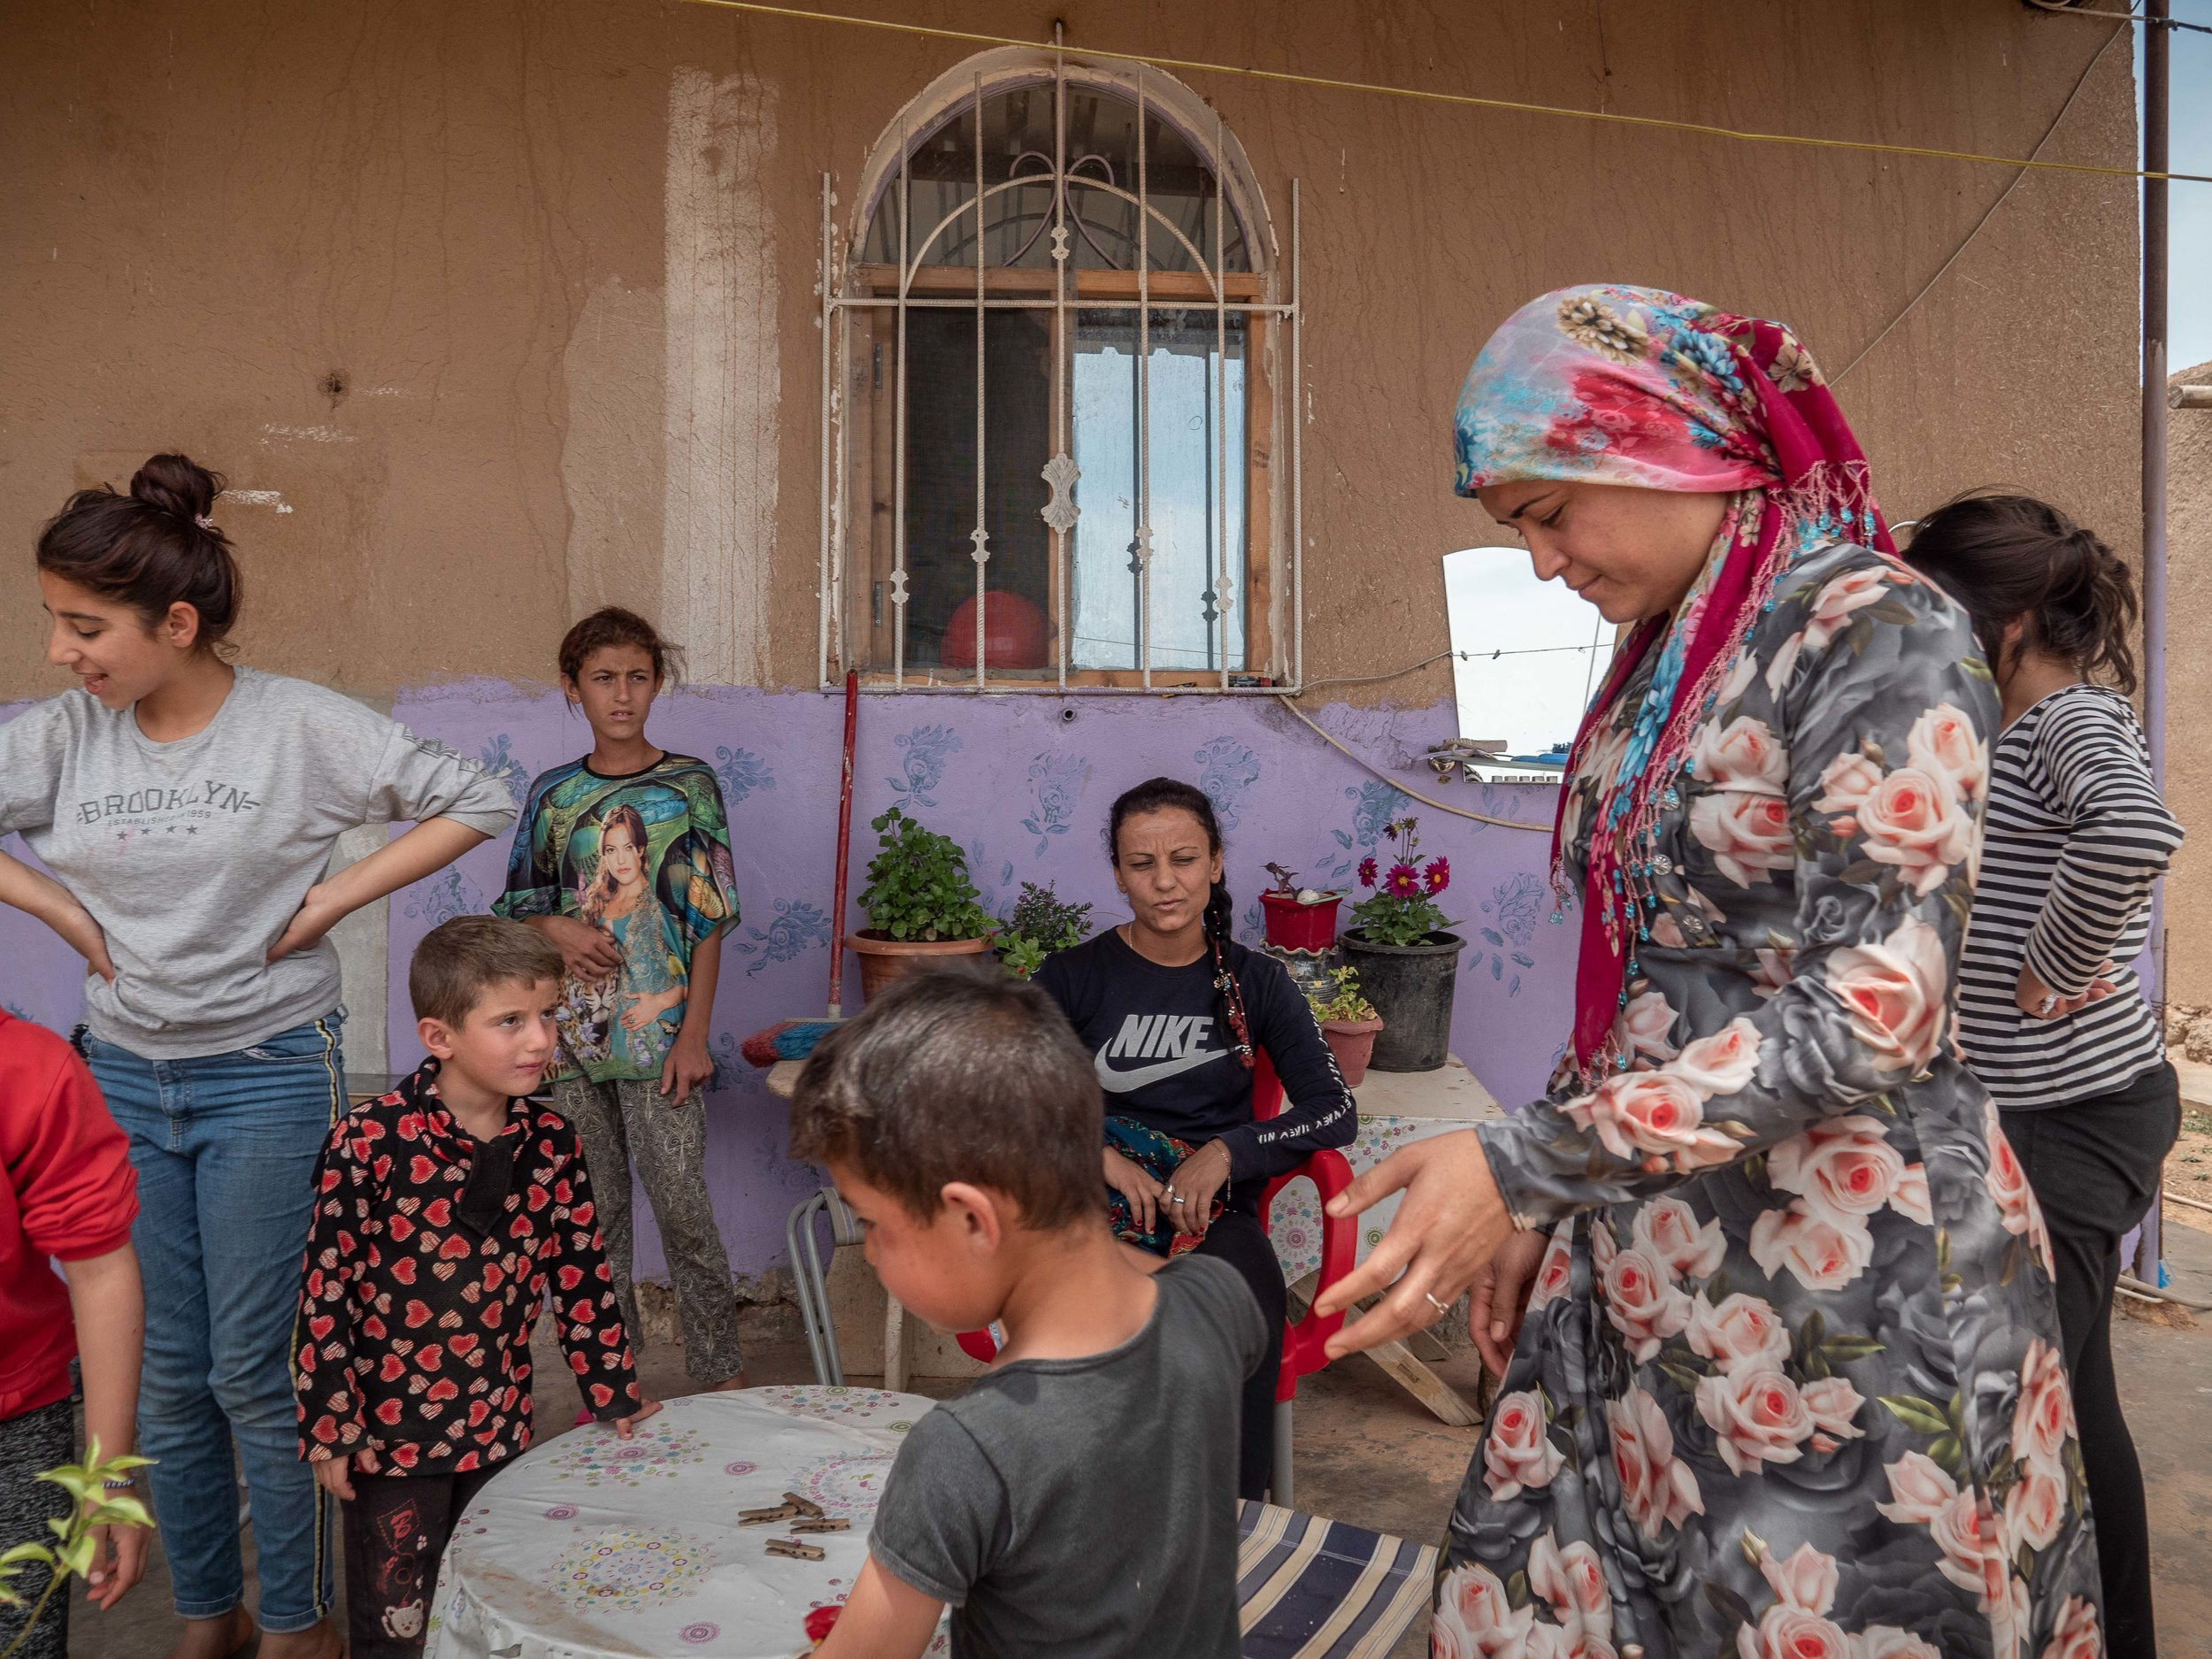 31/05/19, Jinwar, Syria - A group of women and their children in Jinwar. only women are allowed to live in the village of Jinwar, who was founded to give shelter to widows and women who suffered domestic violence.